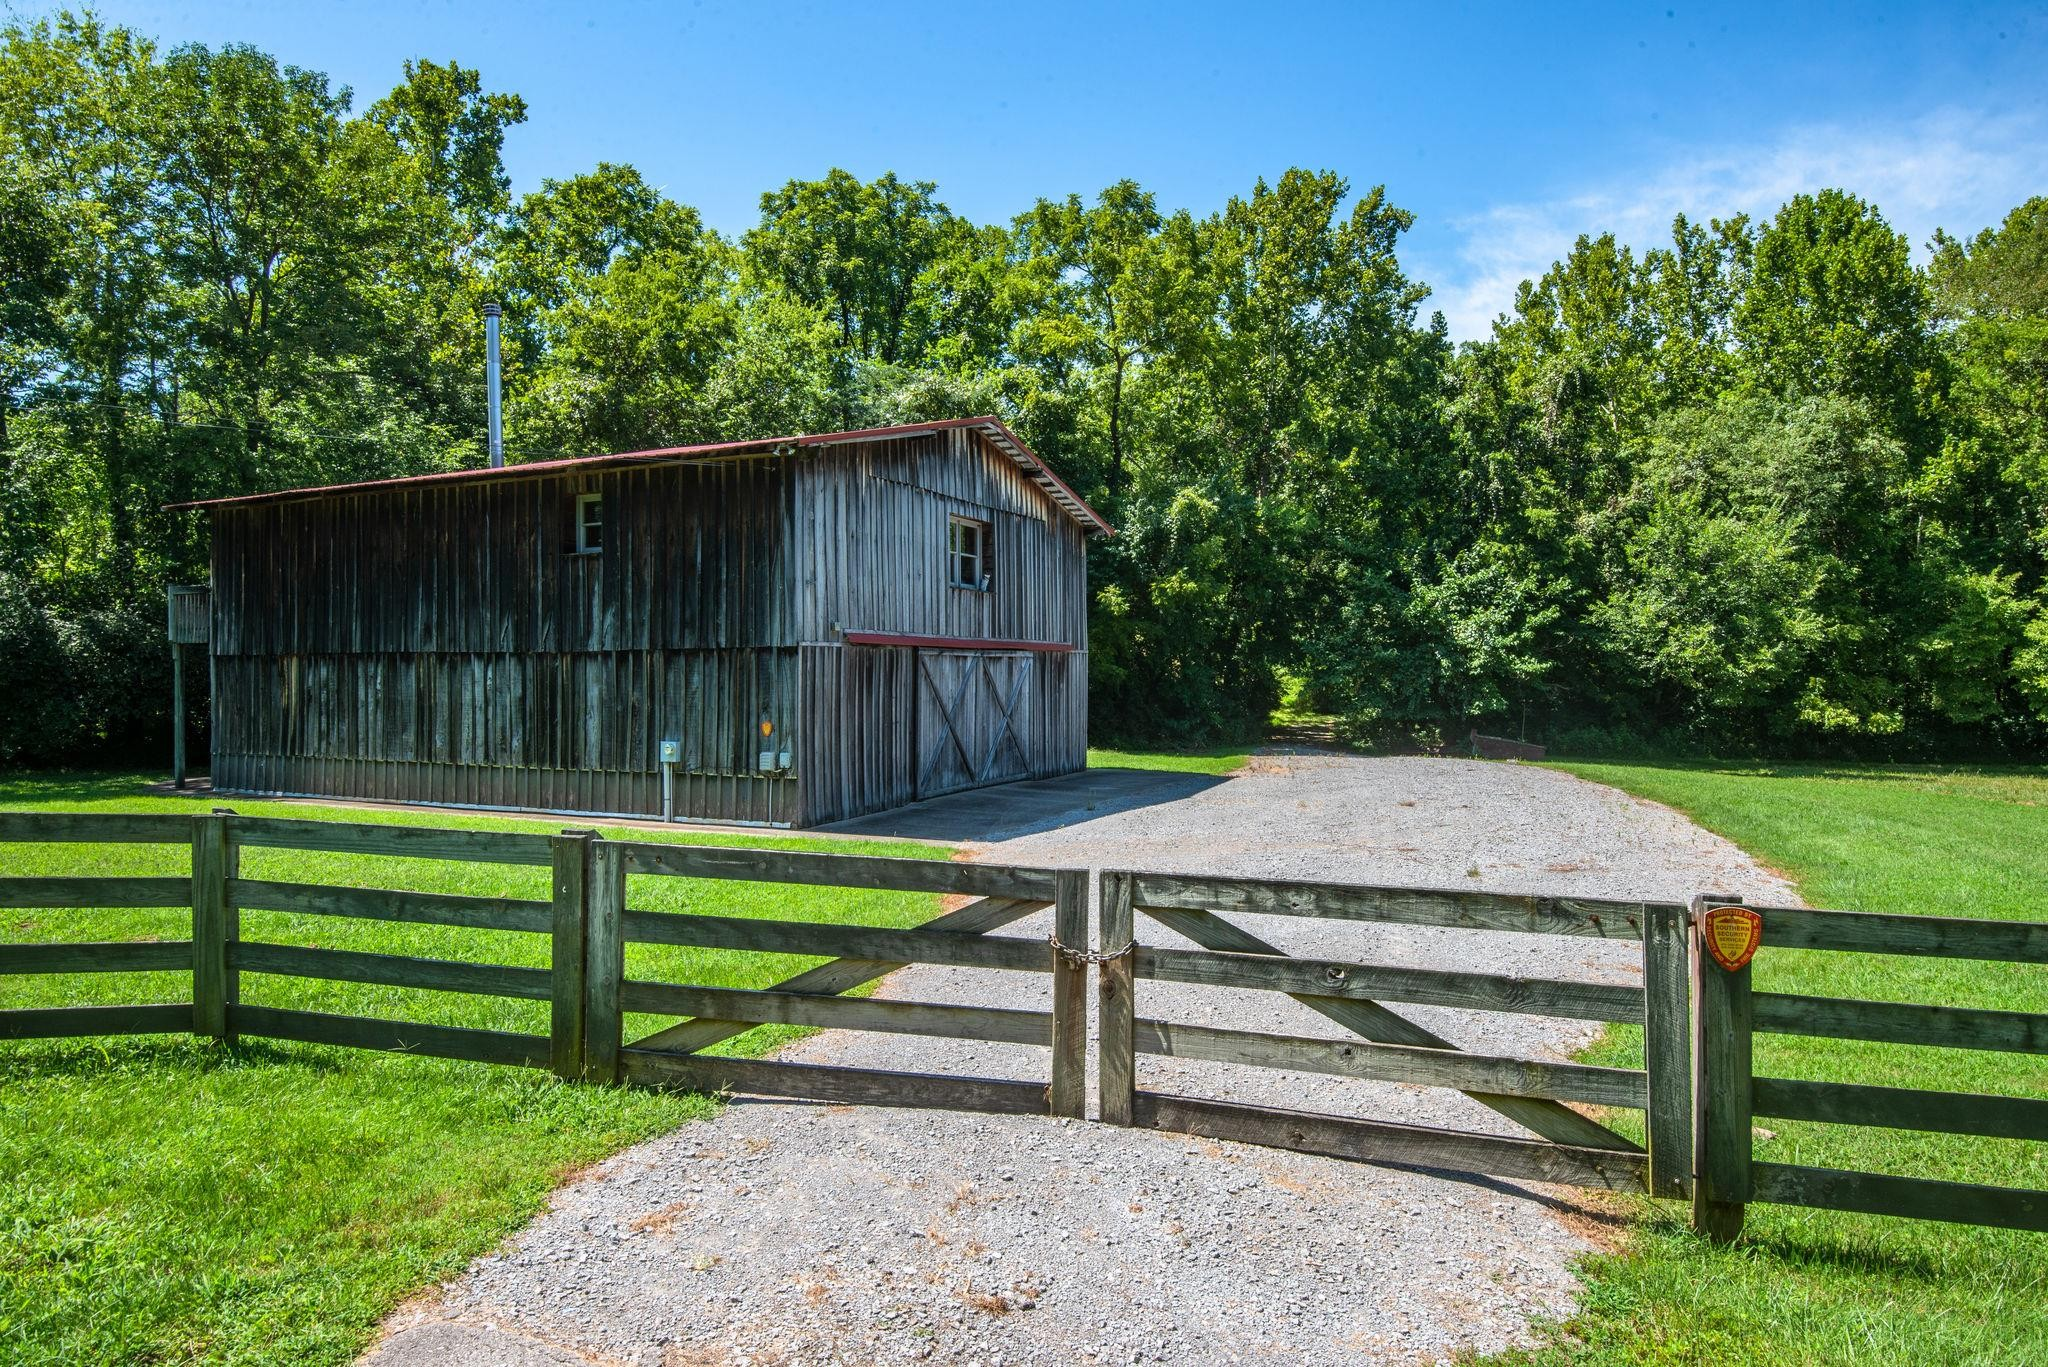 1629 Ragsdale Rd, Brentwood, TN 37027 - Brentwood, TN real estate listing